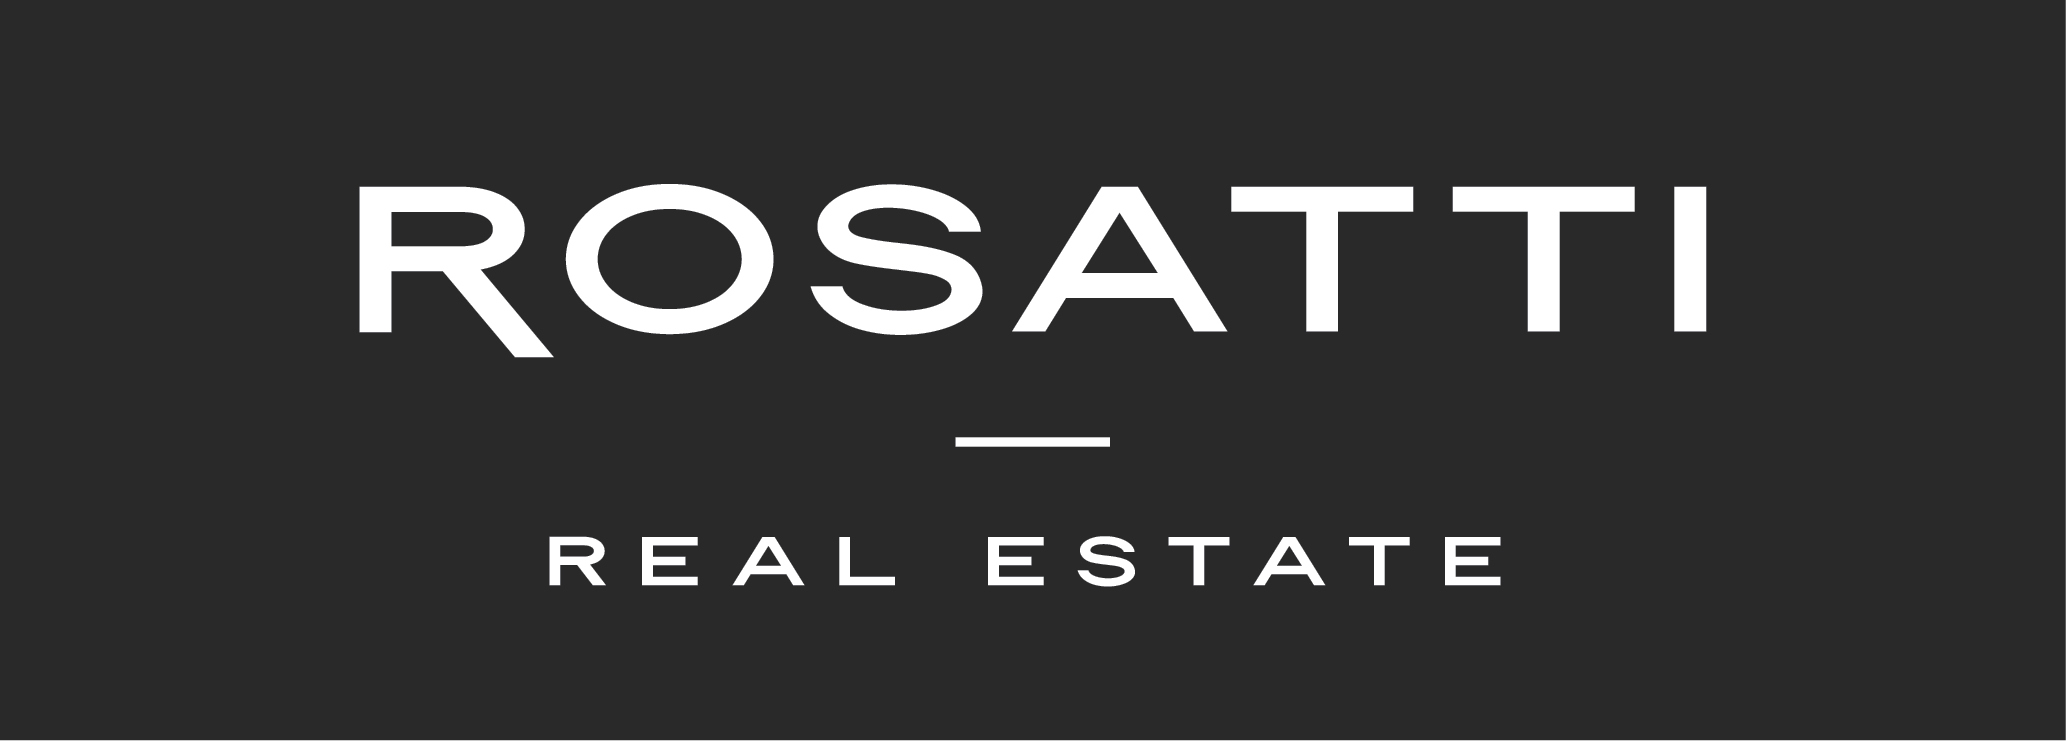 Rosatti Real Estate Barcelona